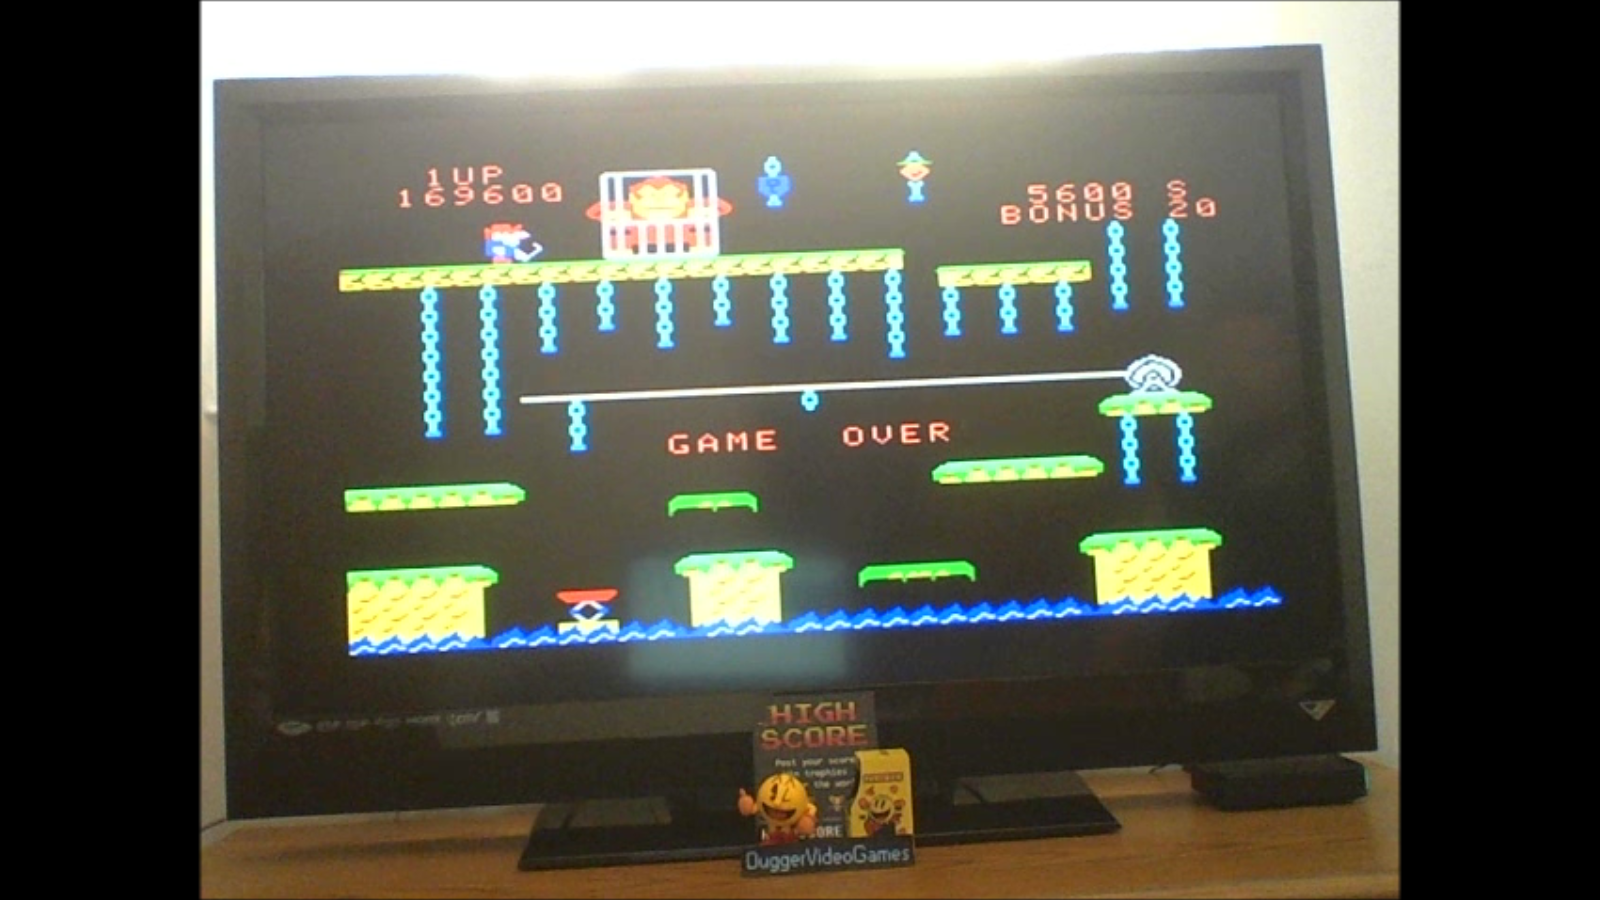 DuggerVideoGames: Donkey Kong Jr [Skill 2] (Colecovision Emulated) 169,600 points on 2017-01-29 15:10:36